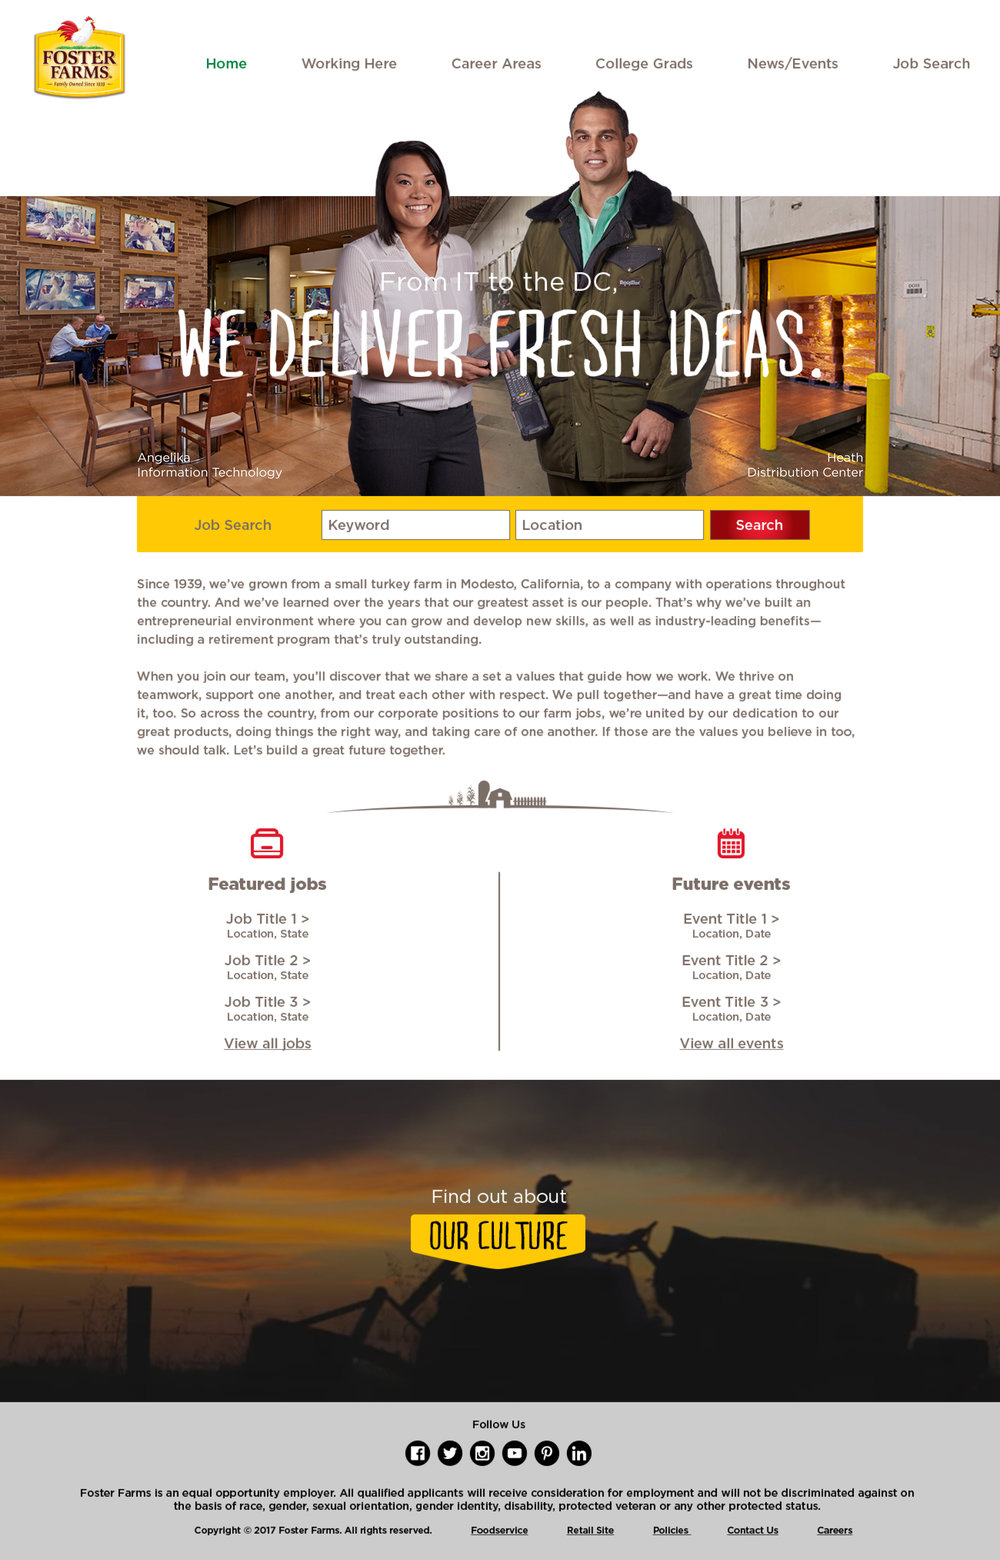 Foster Farms Responsive Design Website Homepage